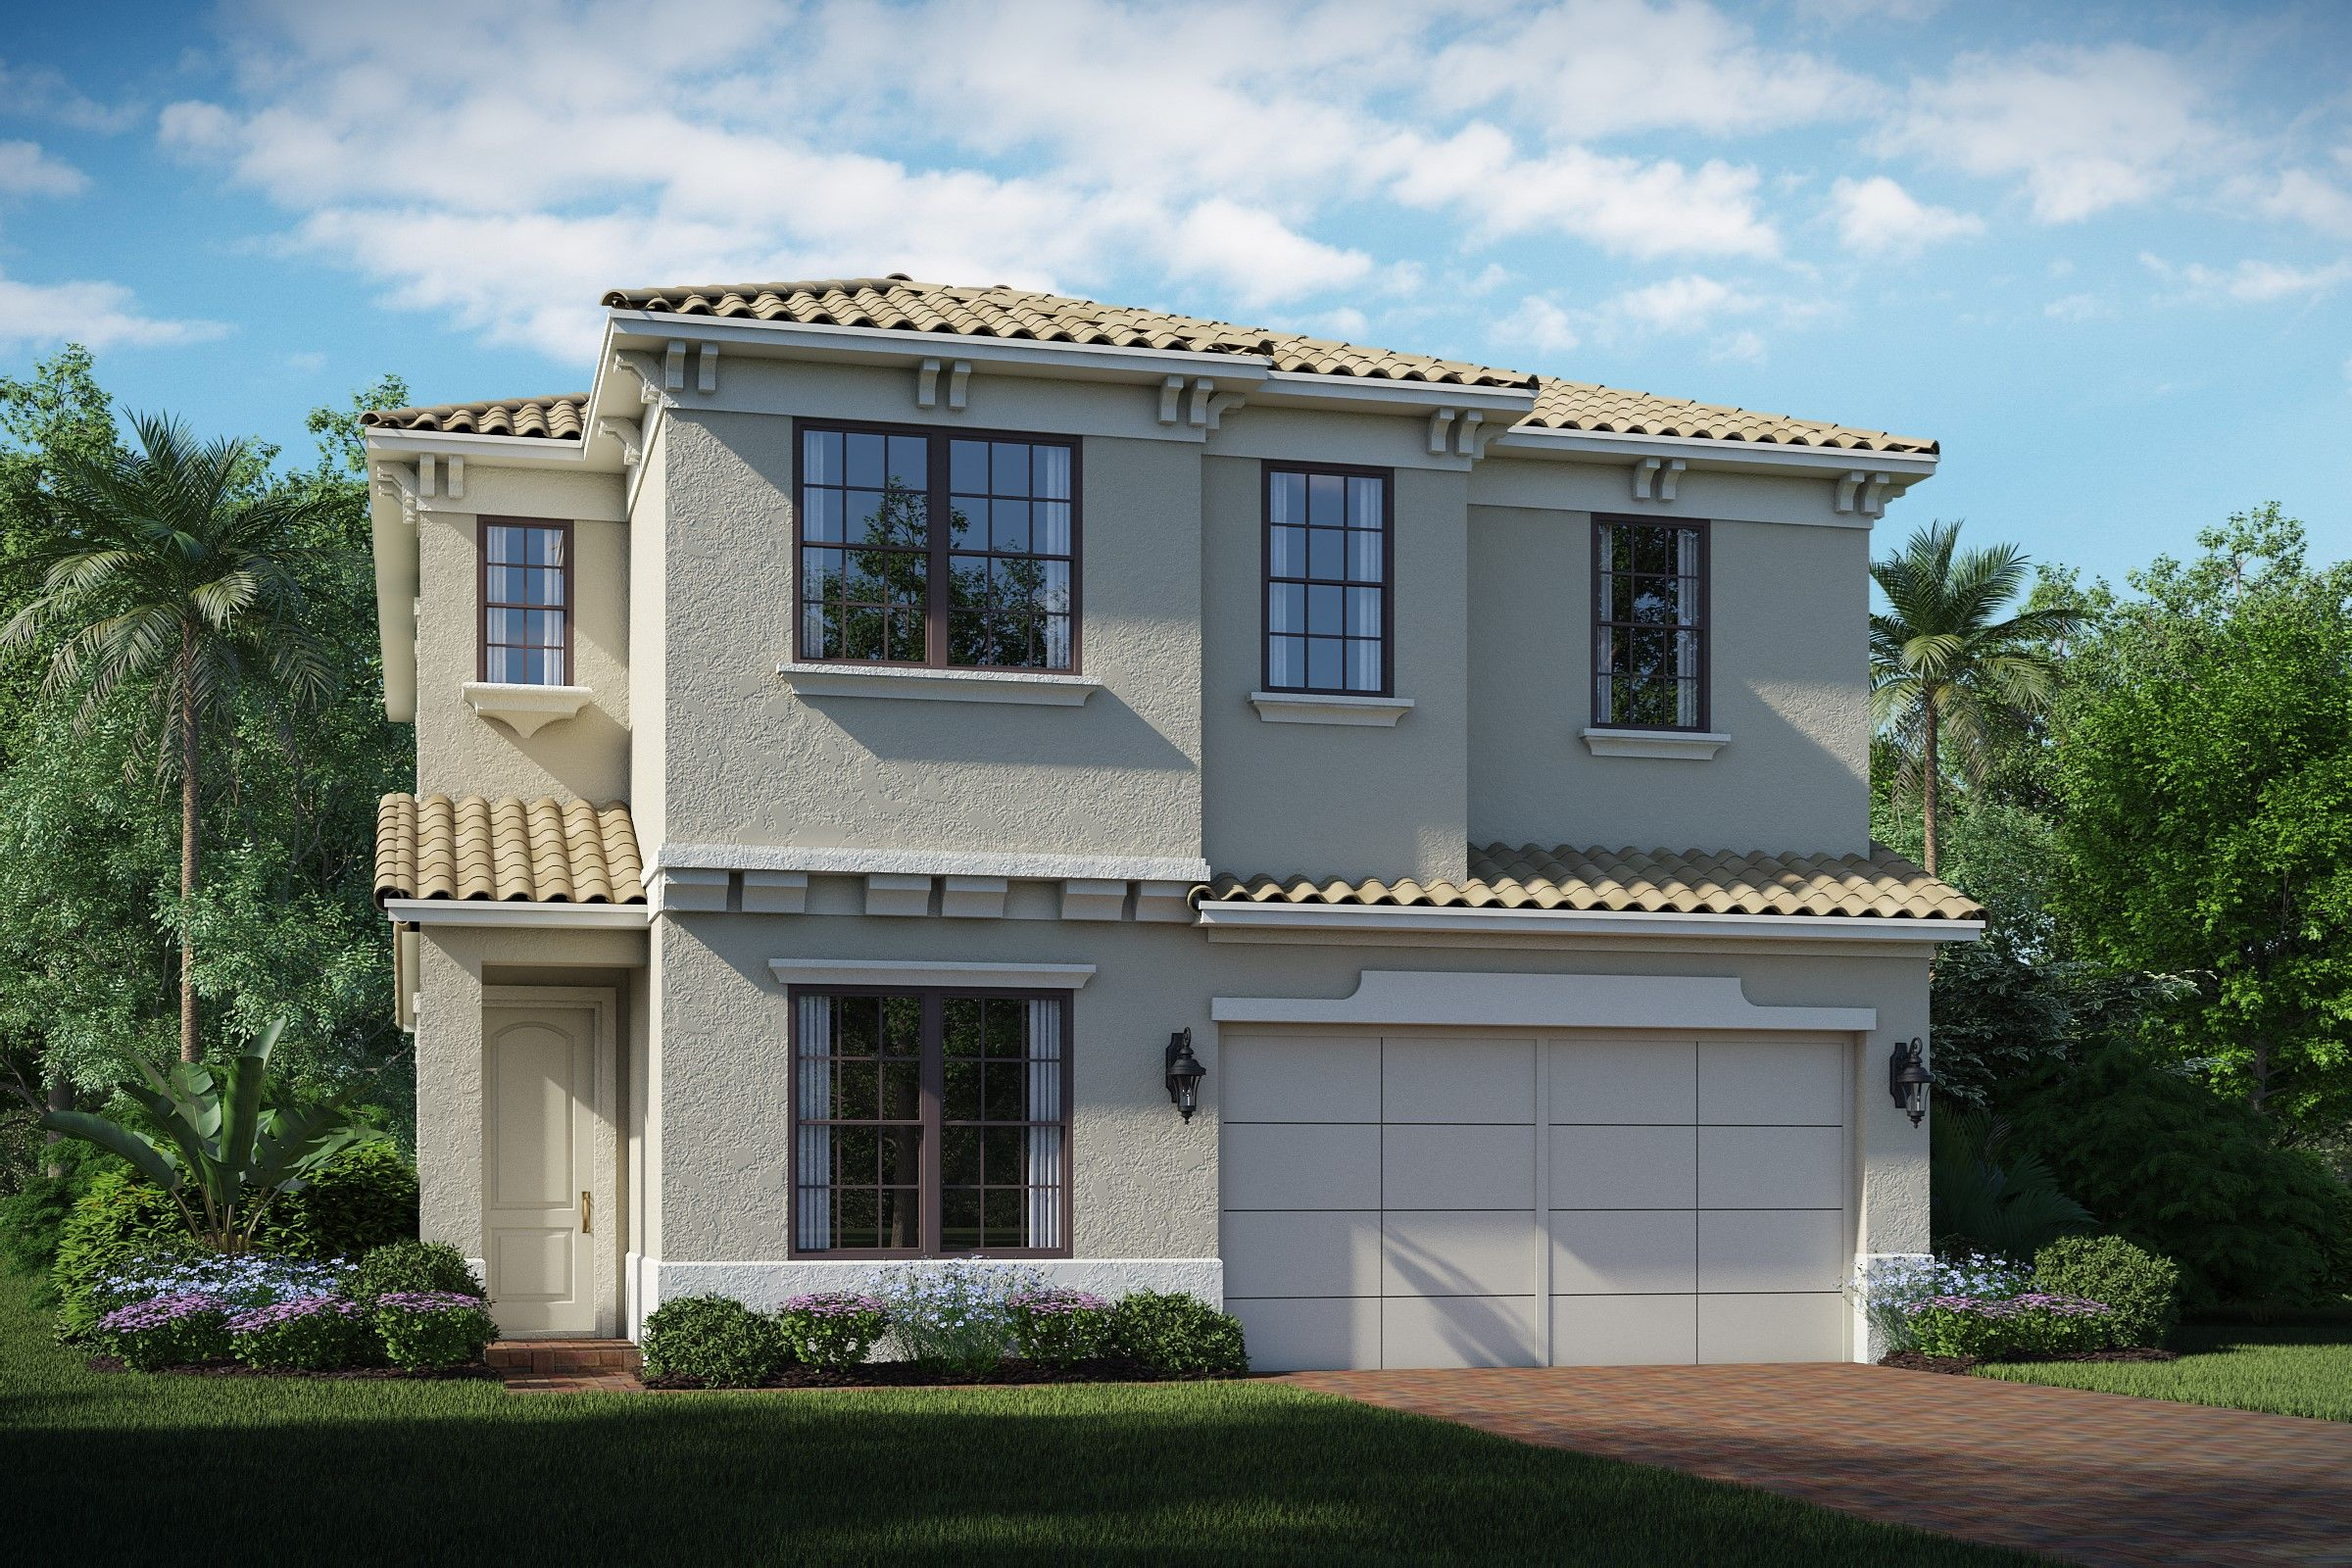 9133 NW 39th Street, Homesite 177, Coral Springs, FL Homes & Land - Real Estate